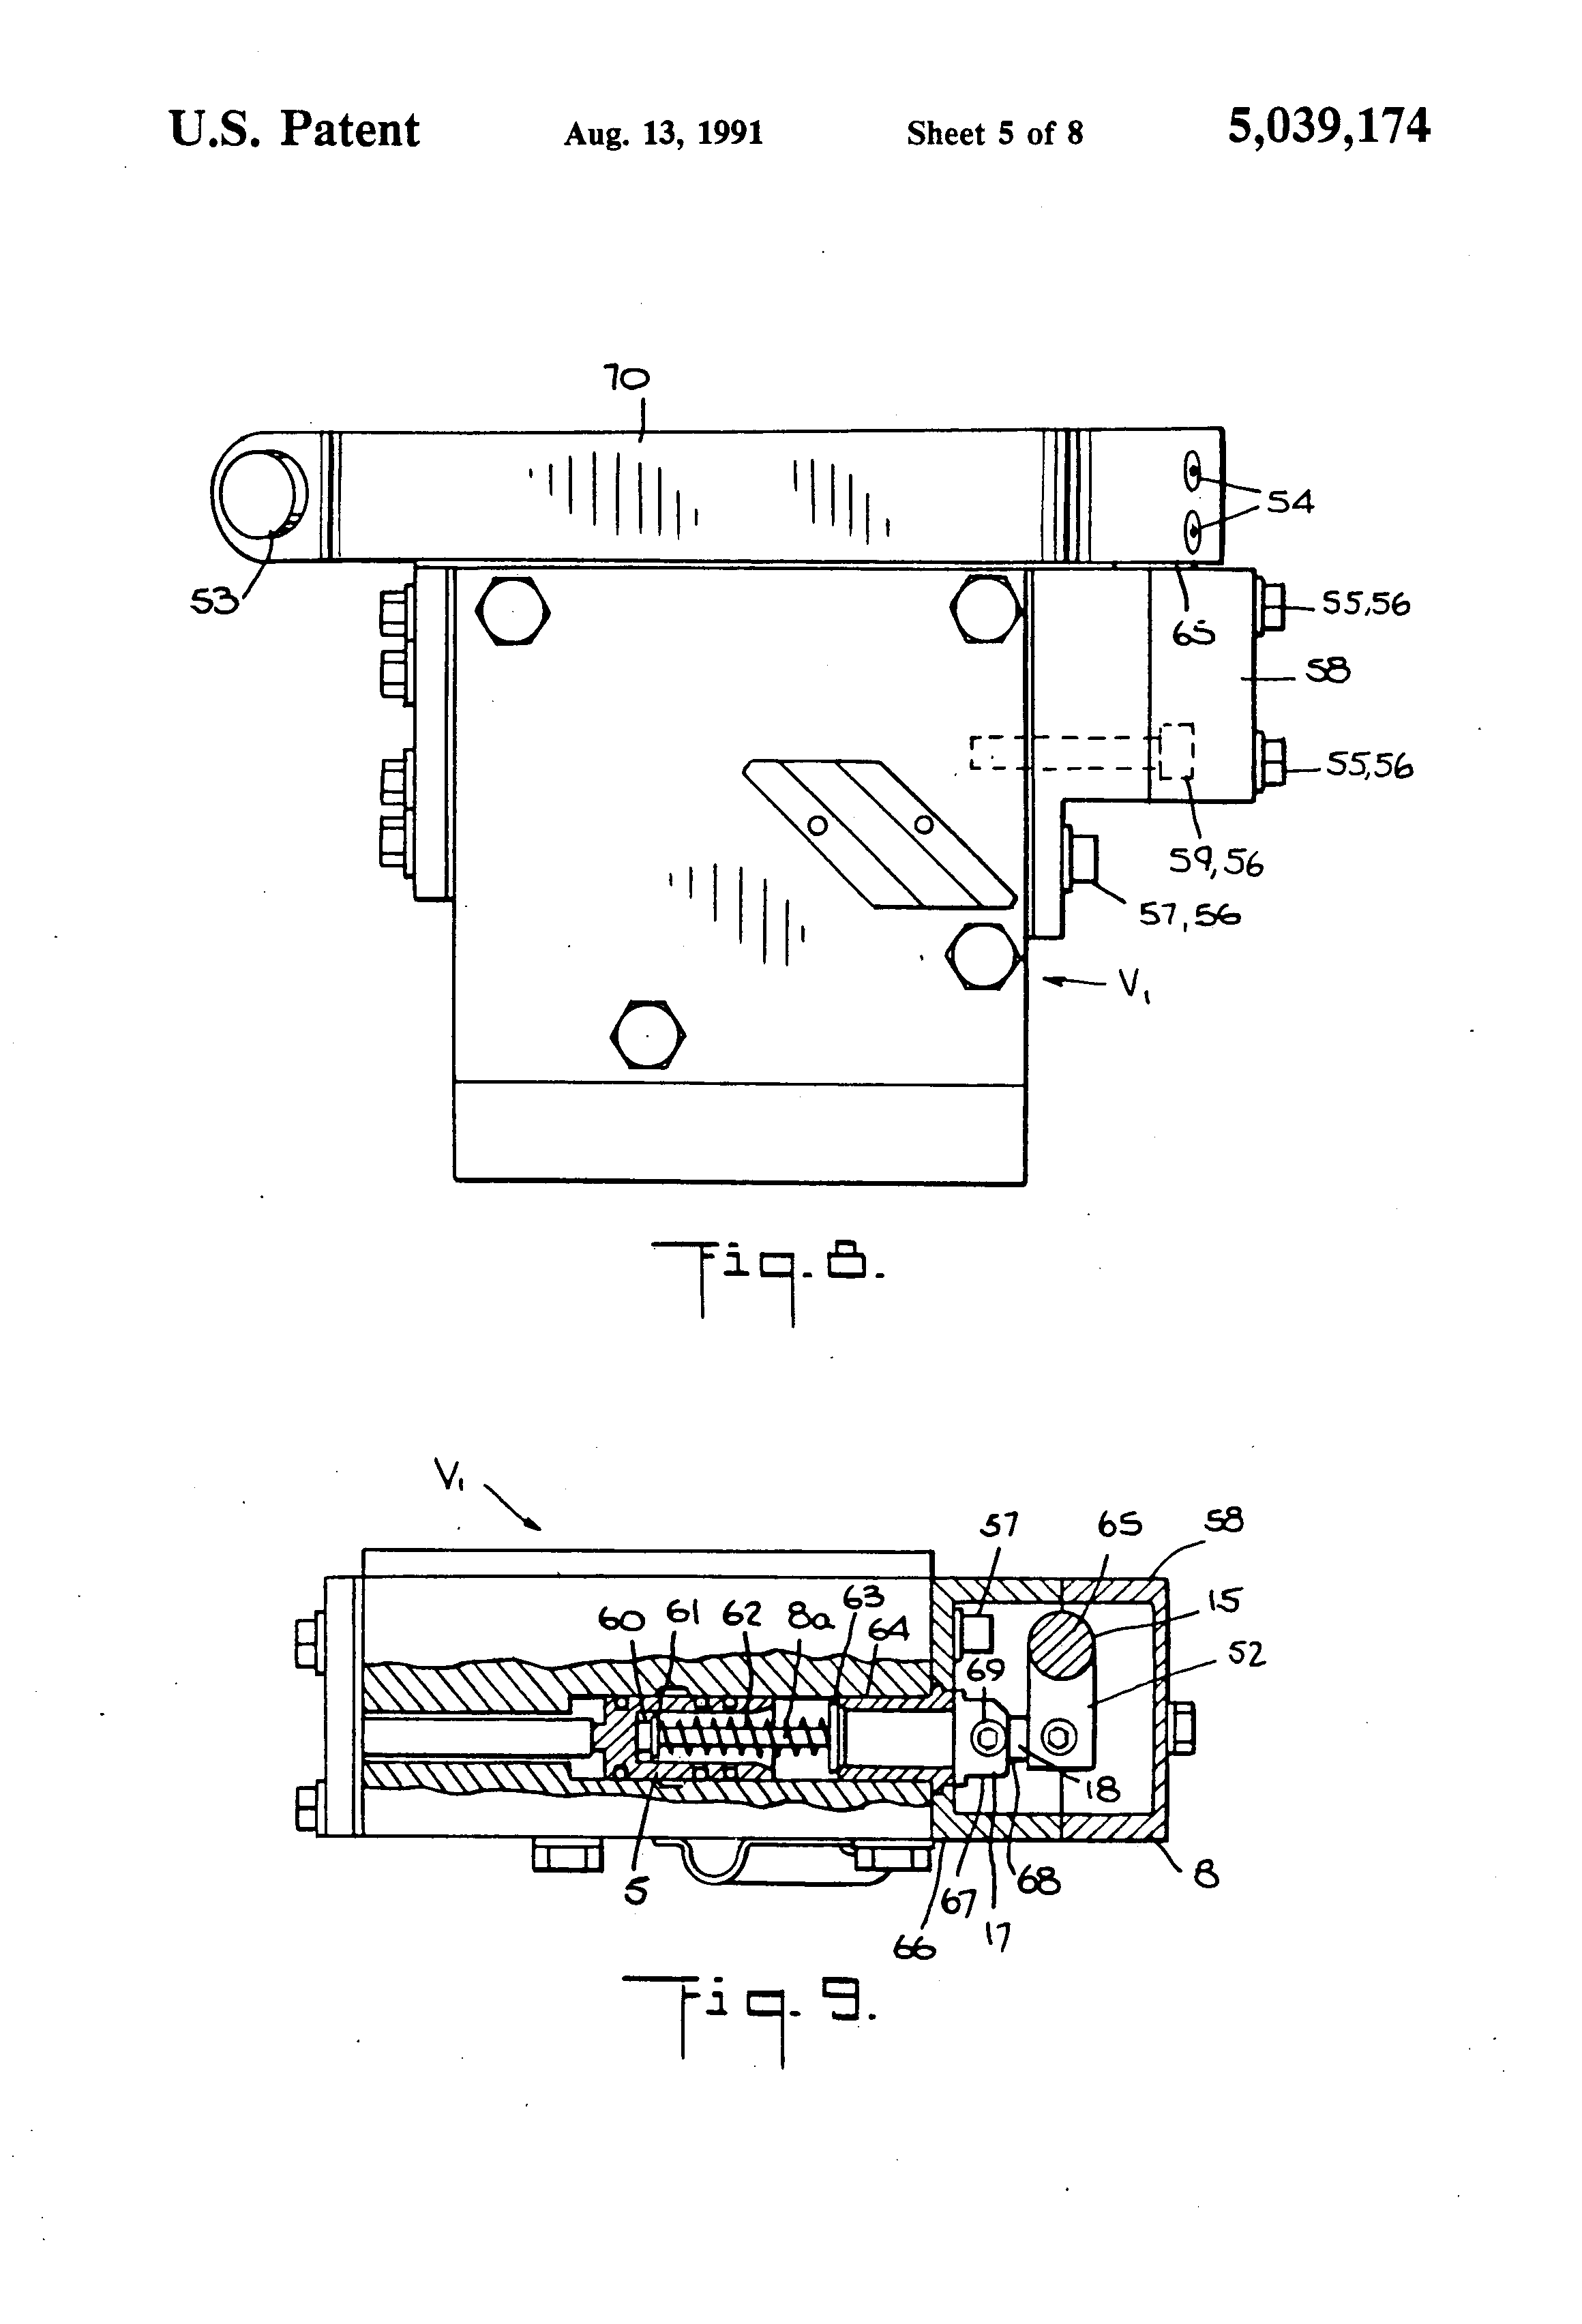 This Application Diagram Indicates How Loadsensing Valves Control Patent Us5039174 Empty Load Braking System For Railroad Cars And Drawing